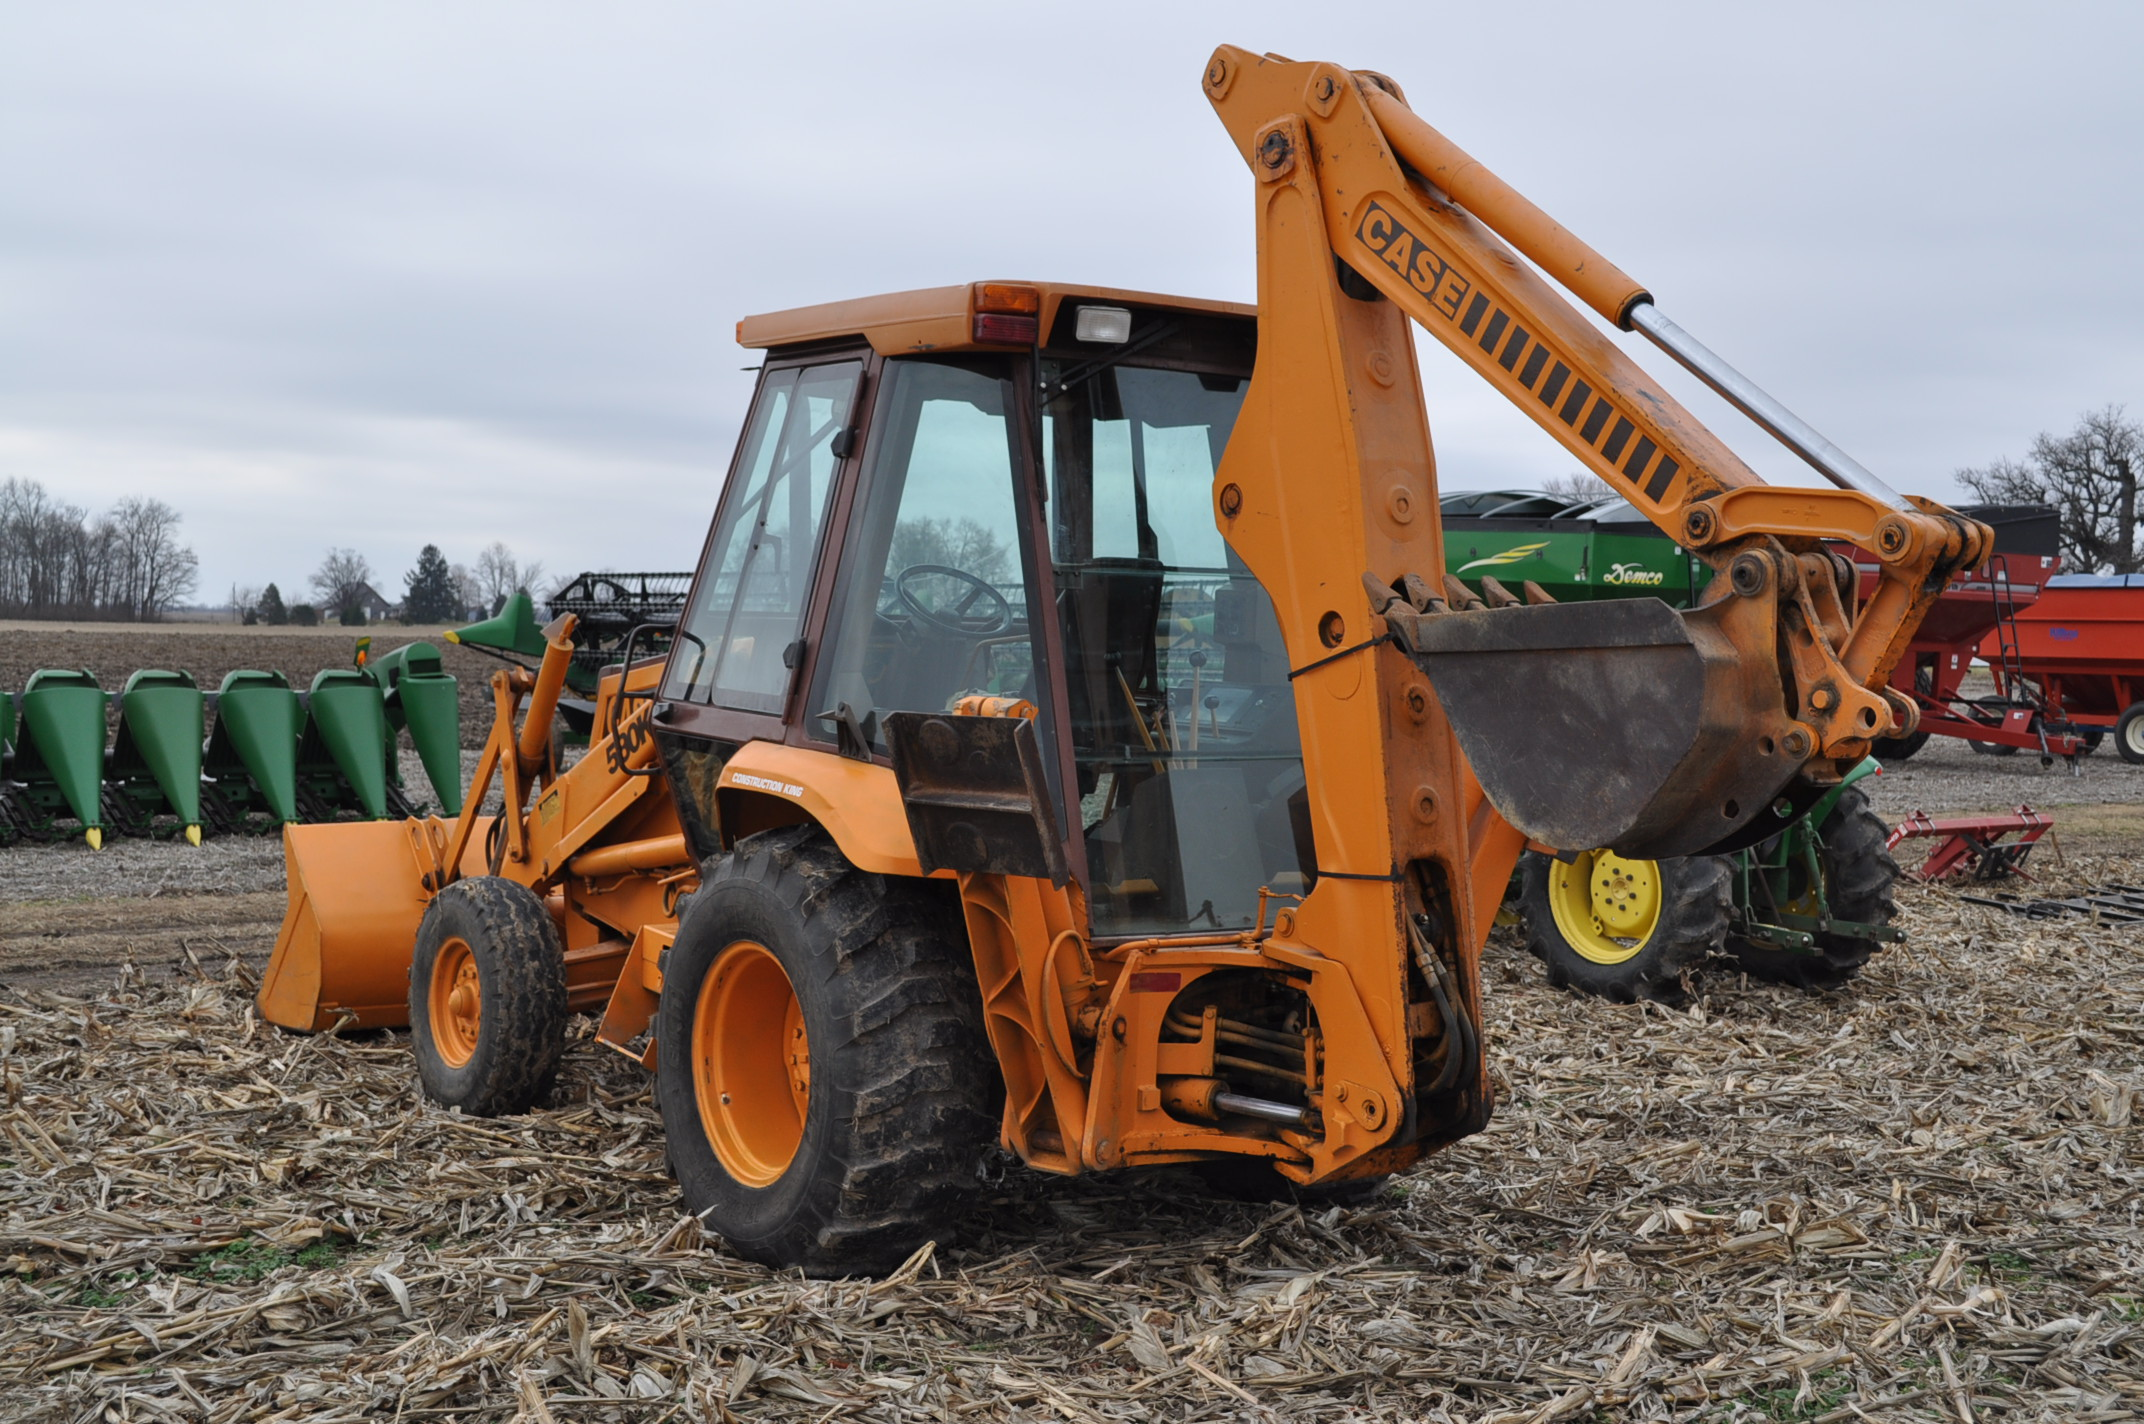 "Case Construction King 580 K backhoe, 17.5L-24 rear, 11L-16 front, CHA, 24"" digging bucket, 2 - Image 2 of 15"